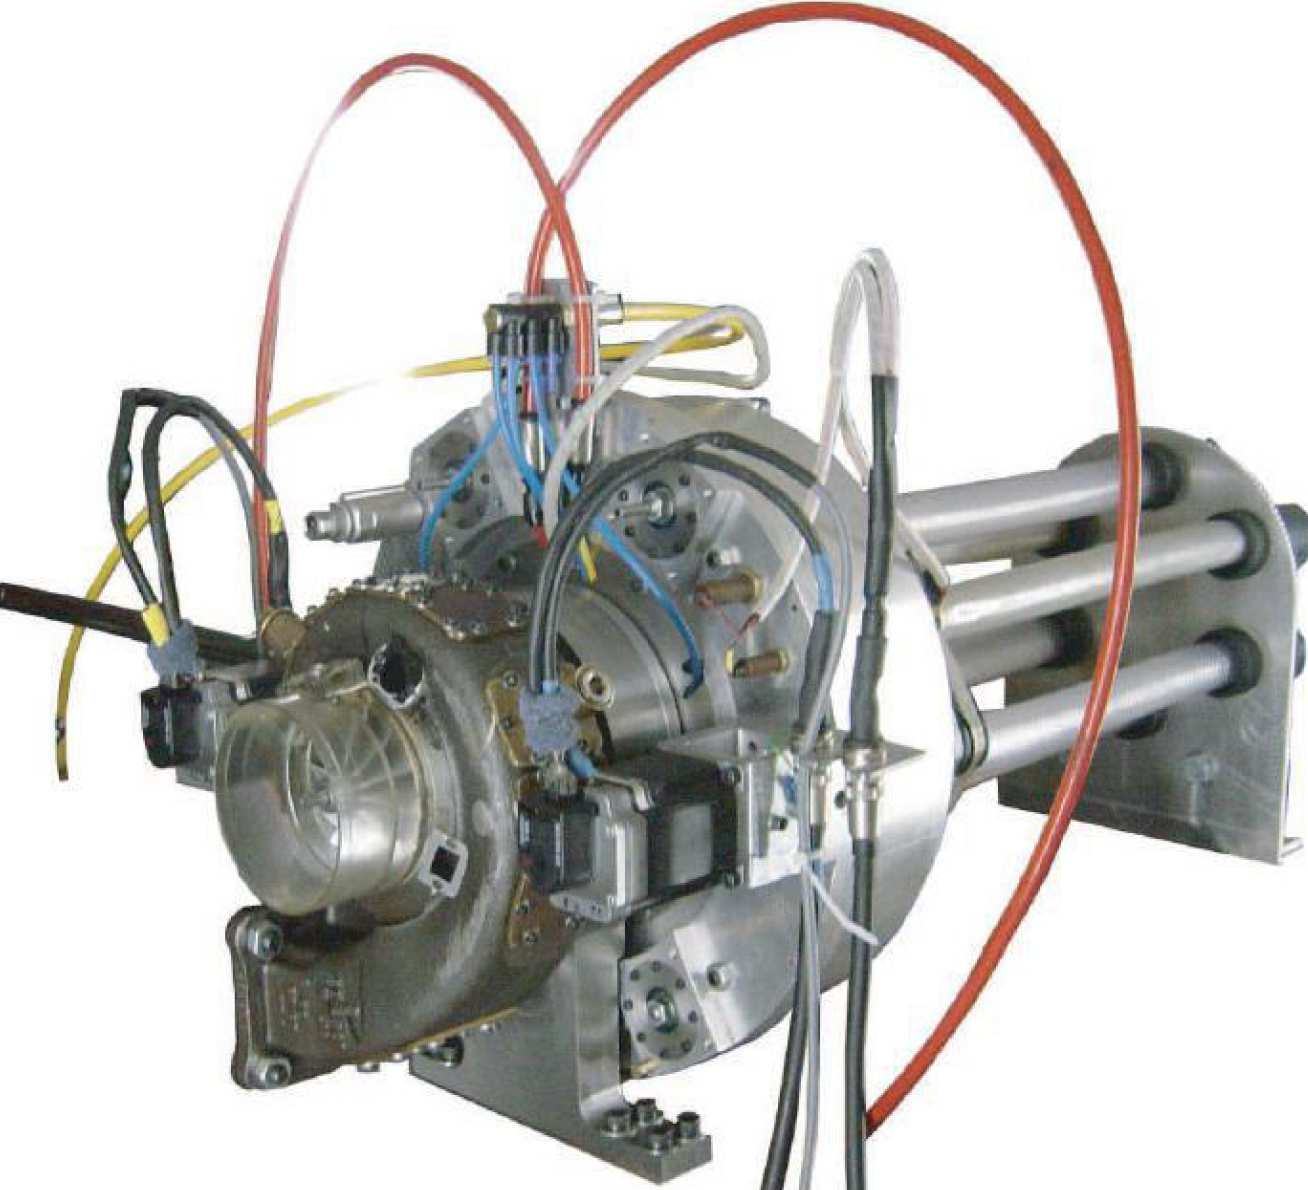 Front view eddy-current dynamometer